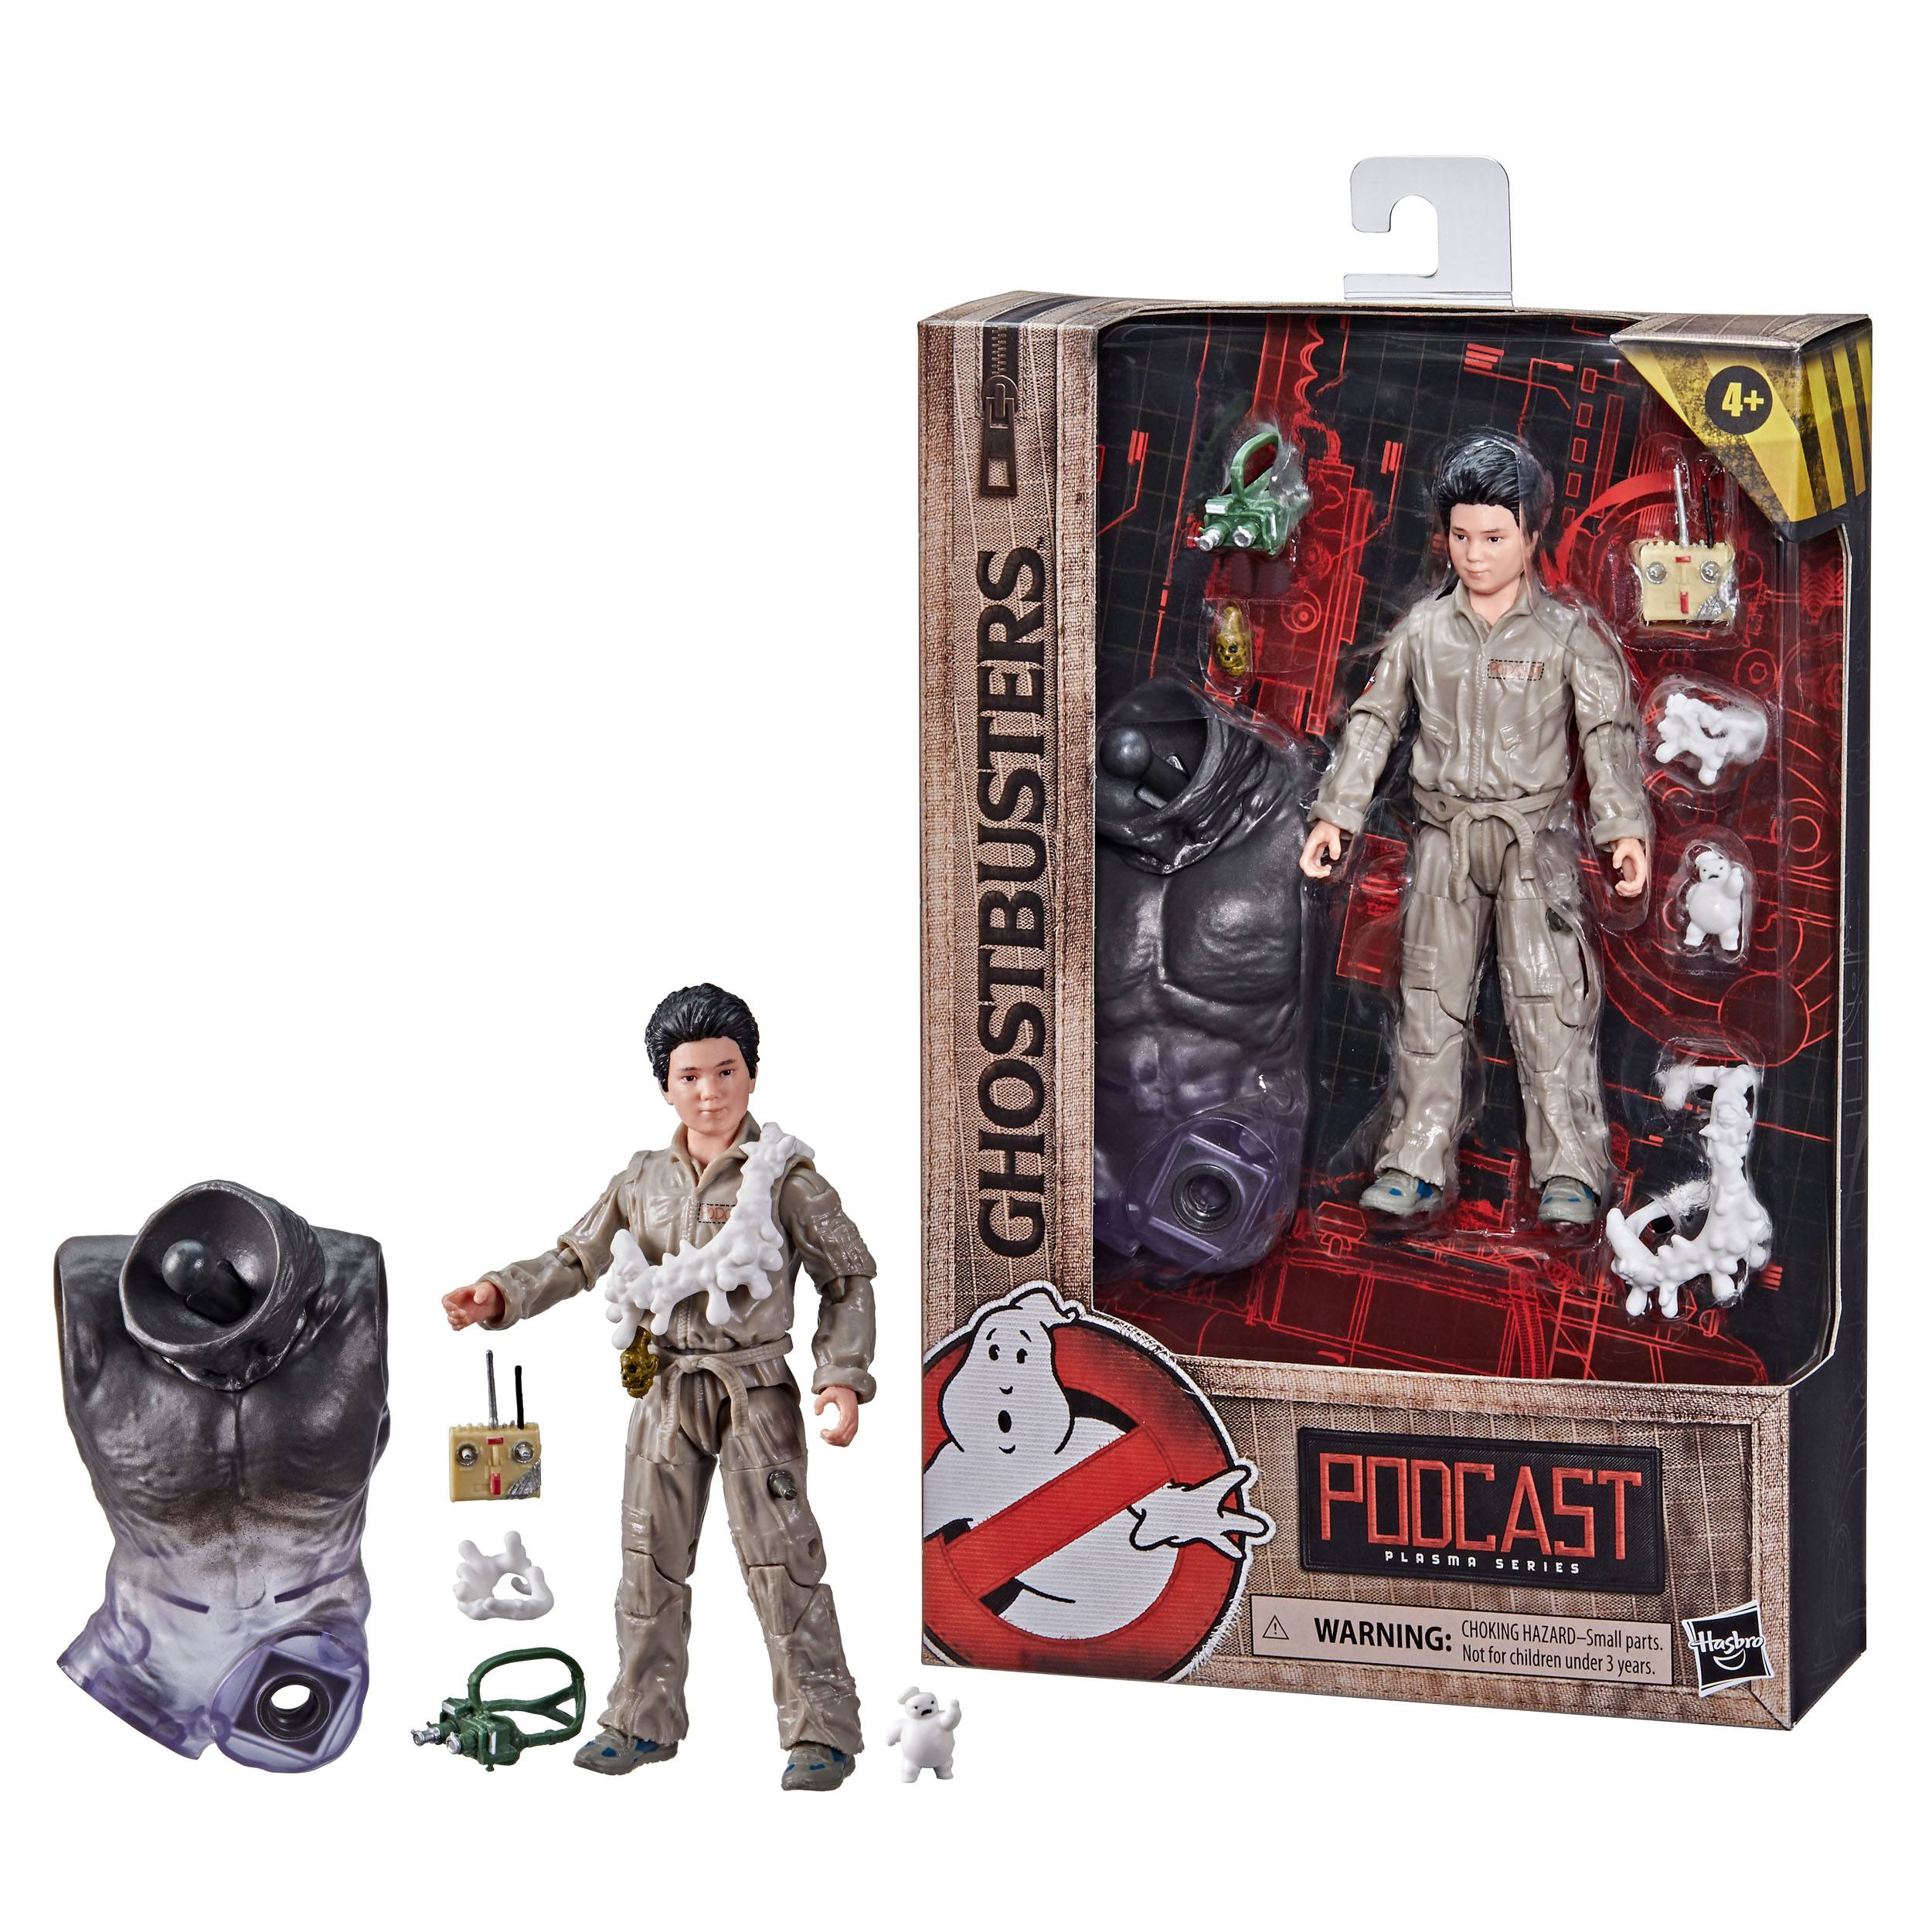 Ghostbusters Plasma Series Ghostbusters: Afterlife Podcast  5010993853274